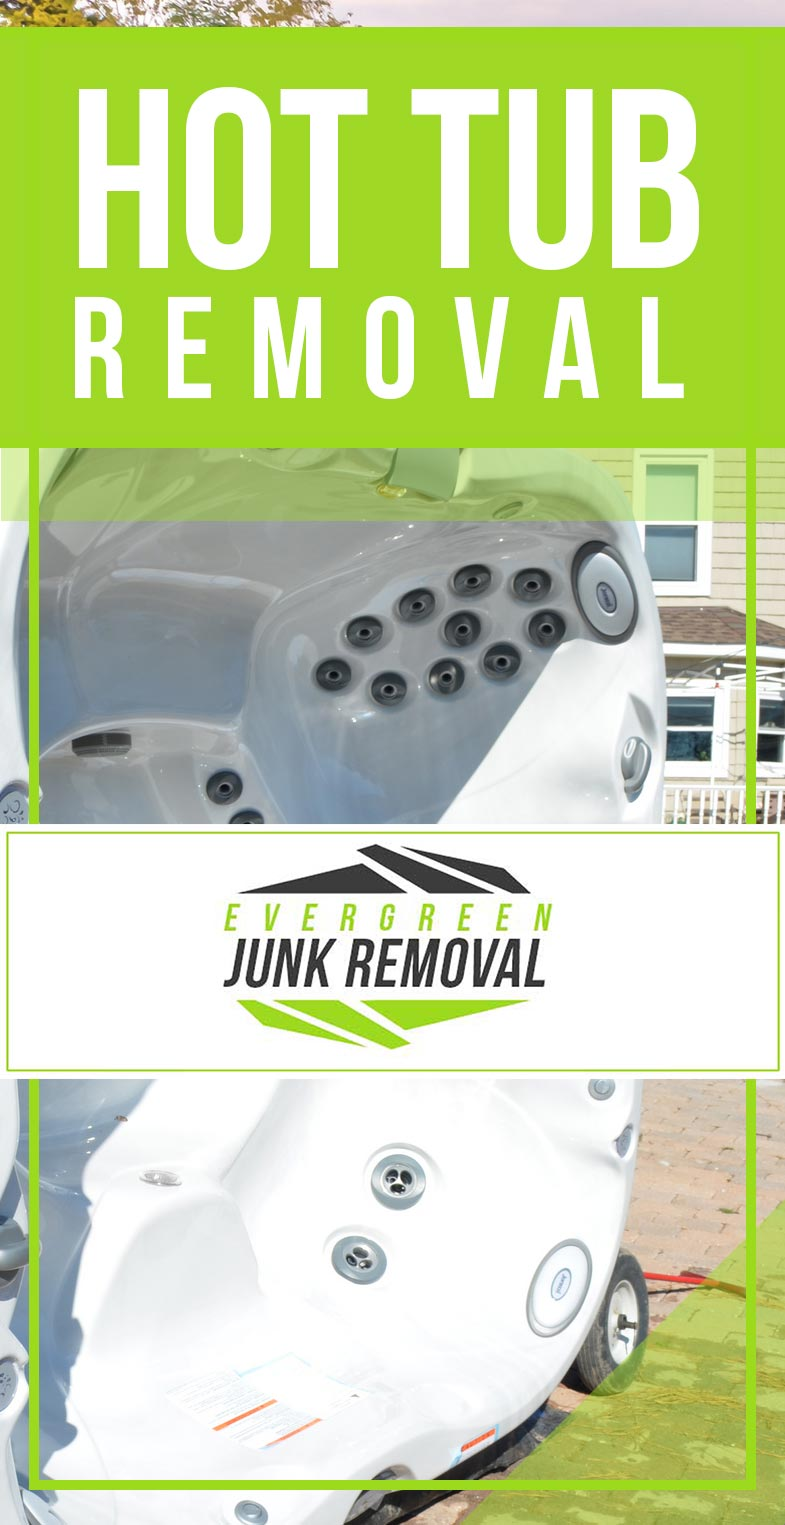 Seabrook Hot Tub Removal